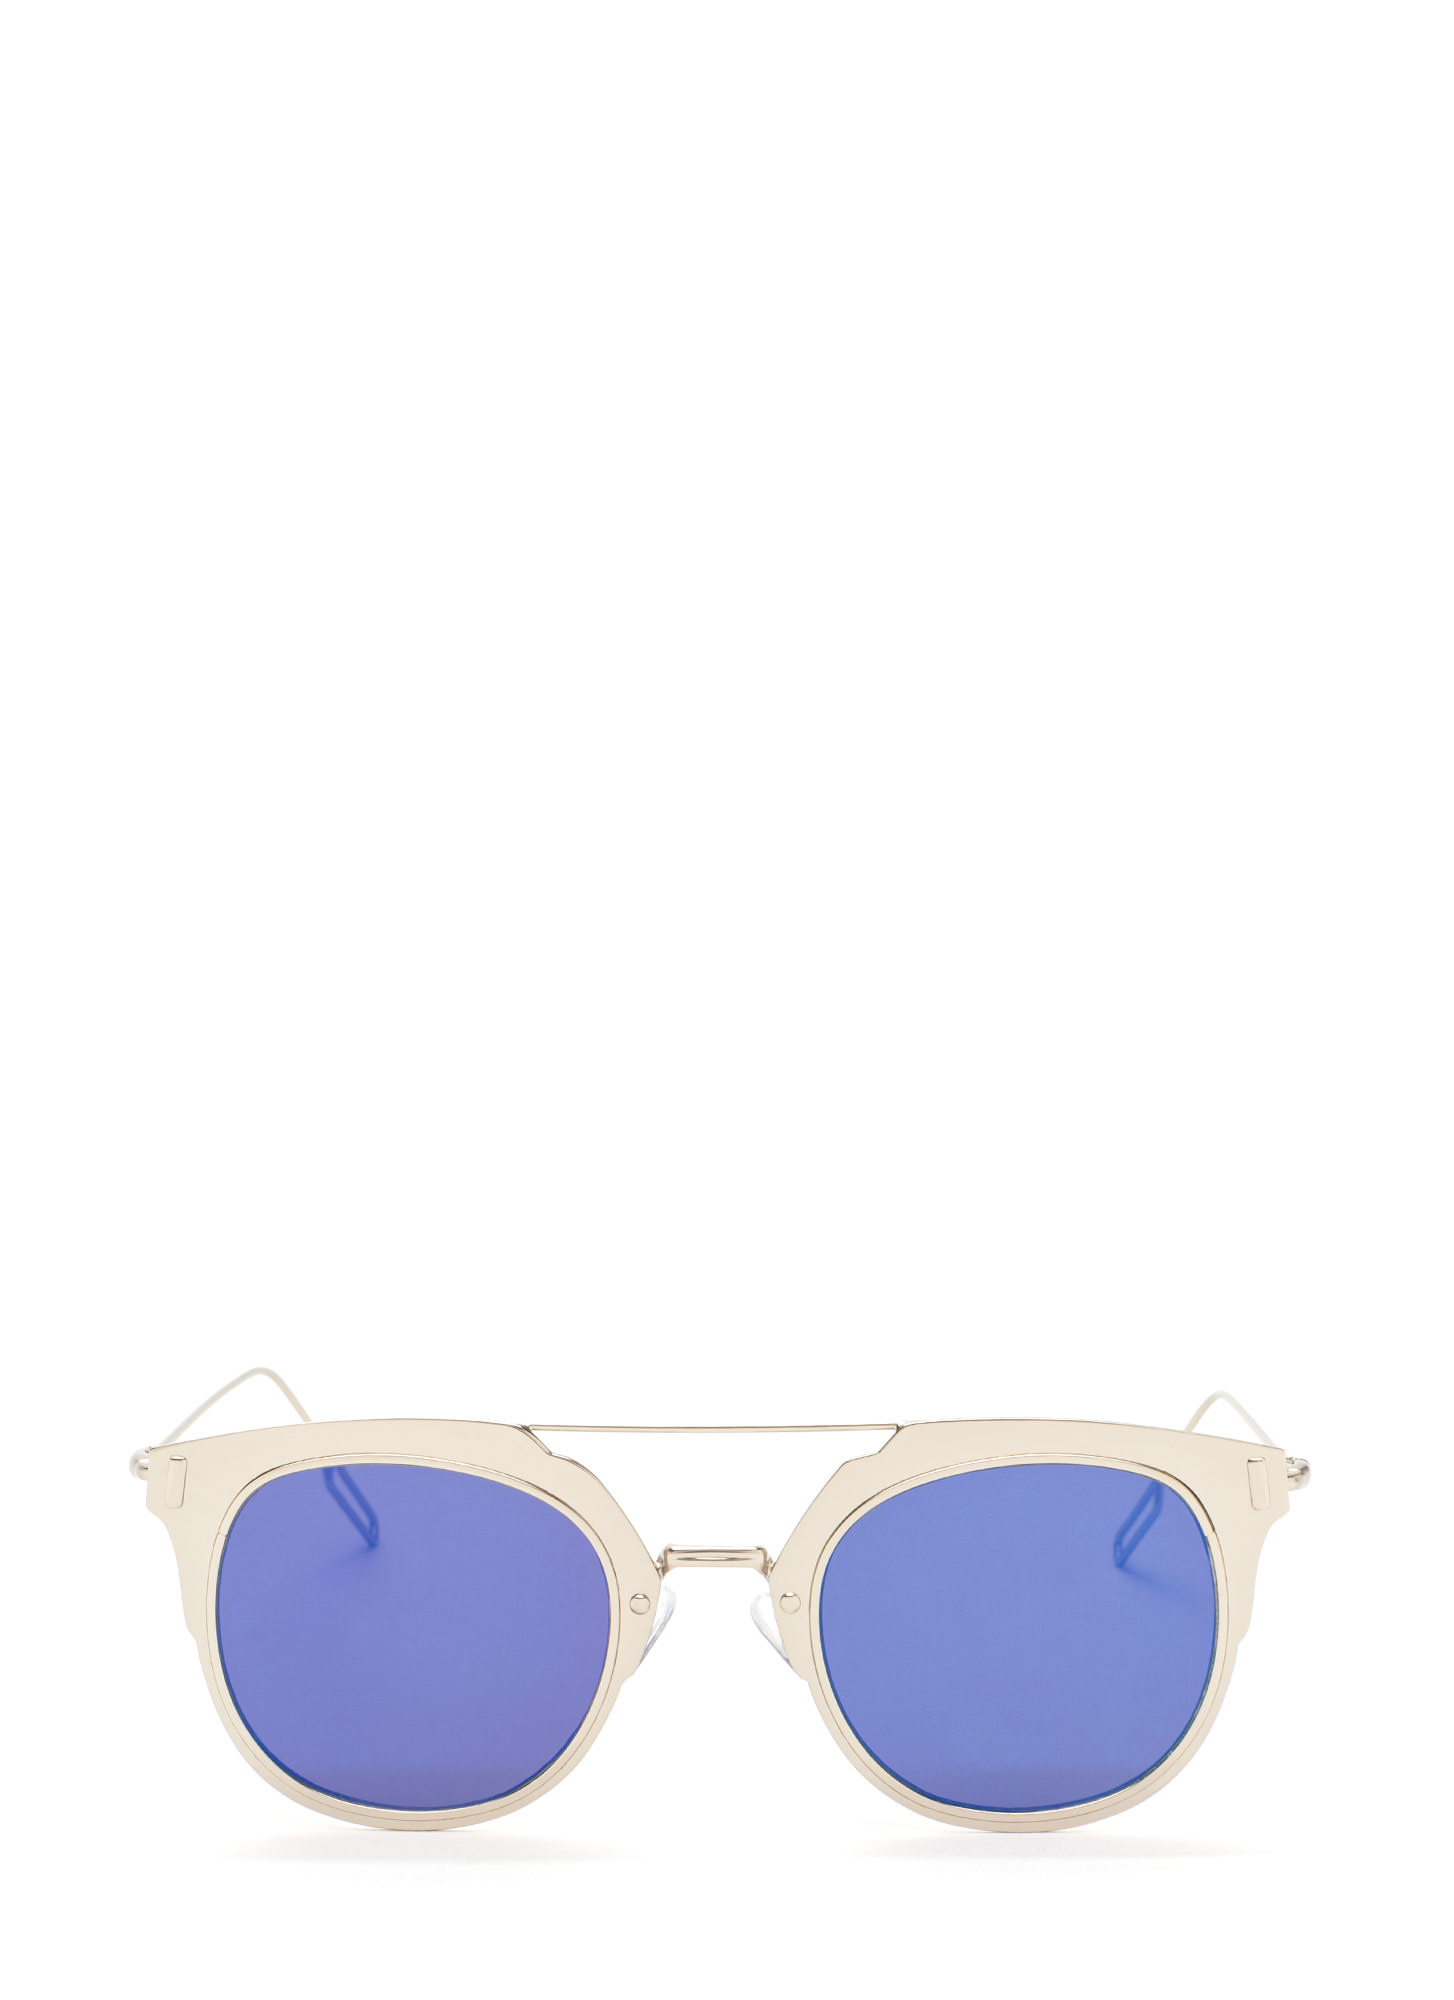 Hollywood Star Metallic Sunglasses SILVERBLUE